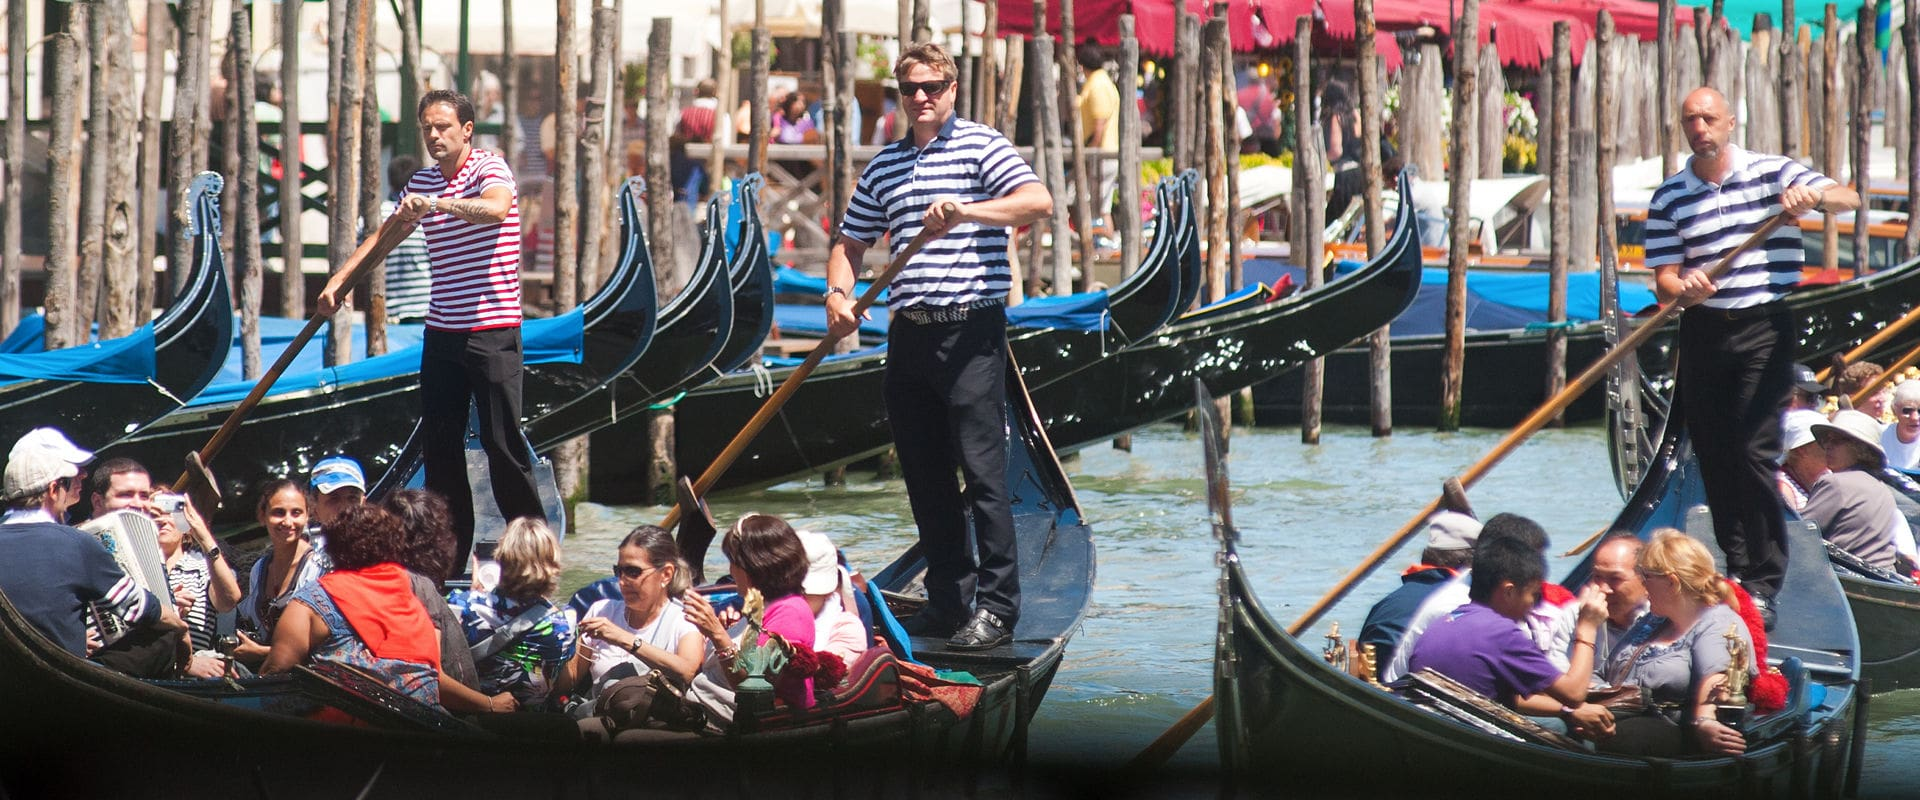 The Grantourismo Travel Guide to Venice, Italy. Copyright © 2017 Terence Carter / Grantourismo. All Rights Reserved.